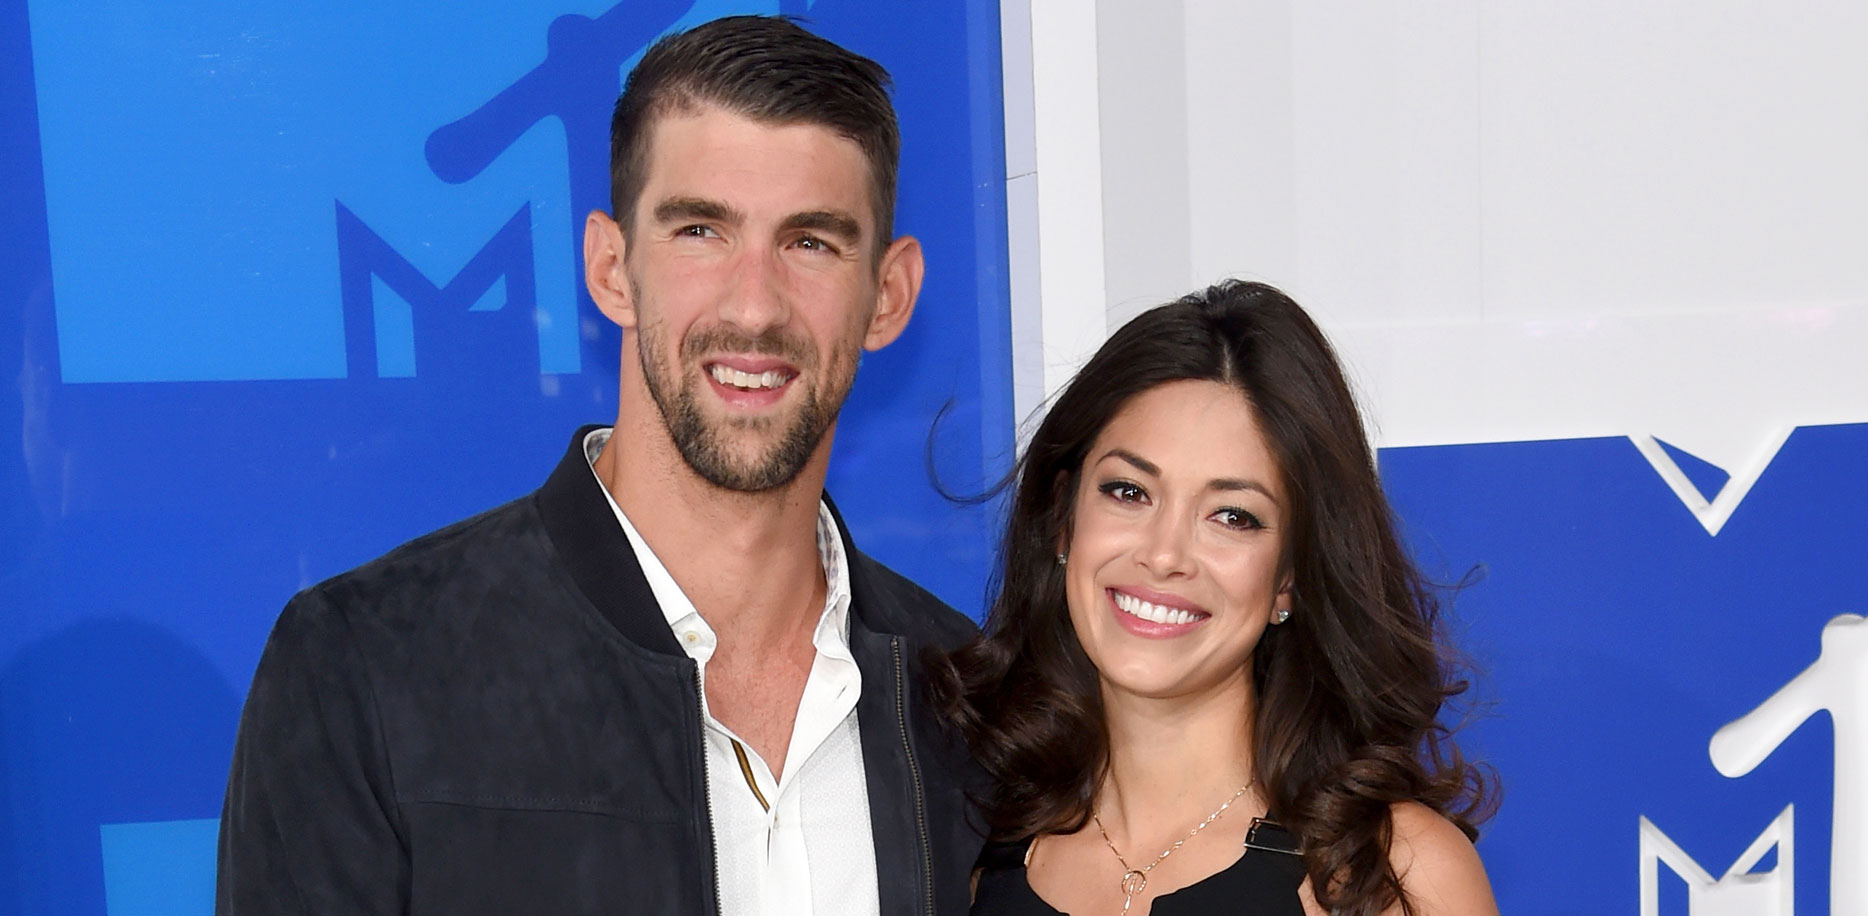 Michael Phelps' Fiancee Nicole Johnson Spills Wedding Details